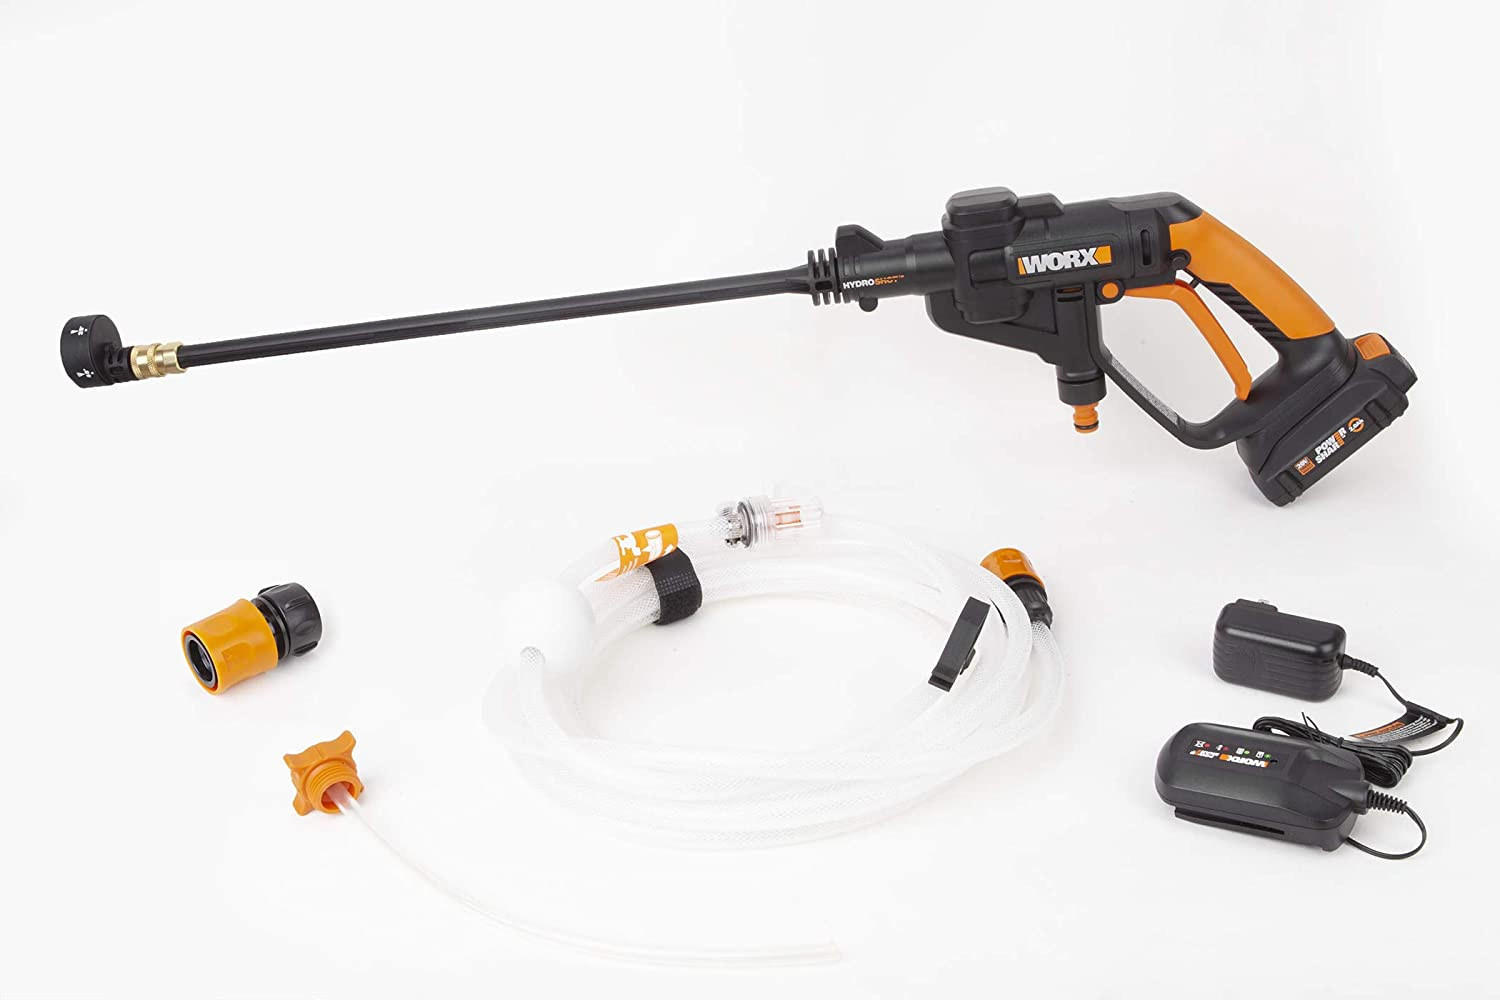 Tampa Mall WORX WG625 5 ☆ very popular 20V Power Share Portable Cleaner Hydroshot